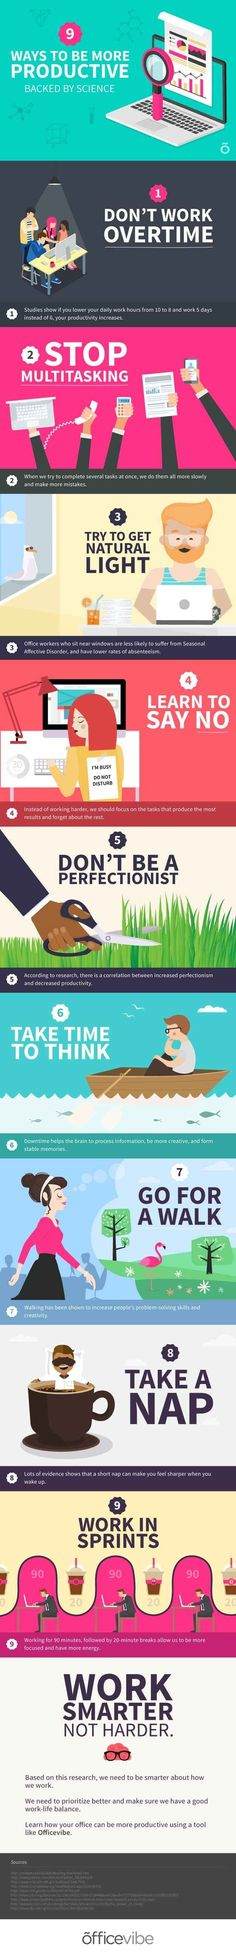 Quotes for Motivation and Inspiration QUOTATION - Image : As the quote says - Description How to Increase Productivity at Work Infographic Productivity Hacks, Increase Productivity, Pomodoro Technique, Self Development, Personal Development, Time Management Tips, Project Management, Feeling Happy, Self Improvement